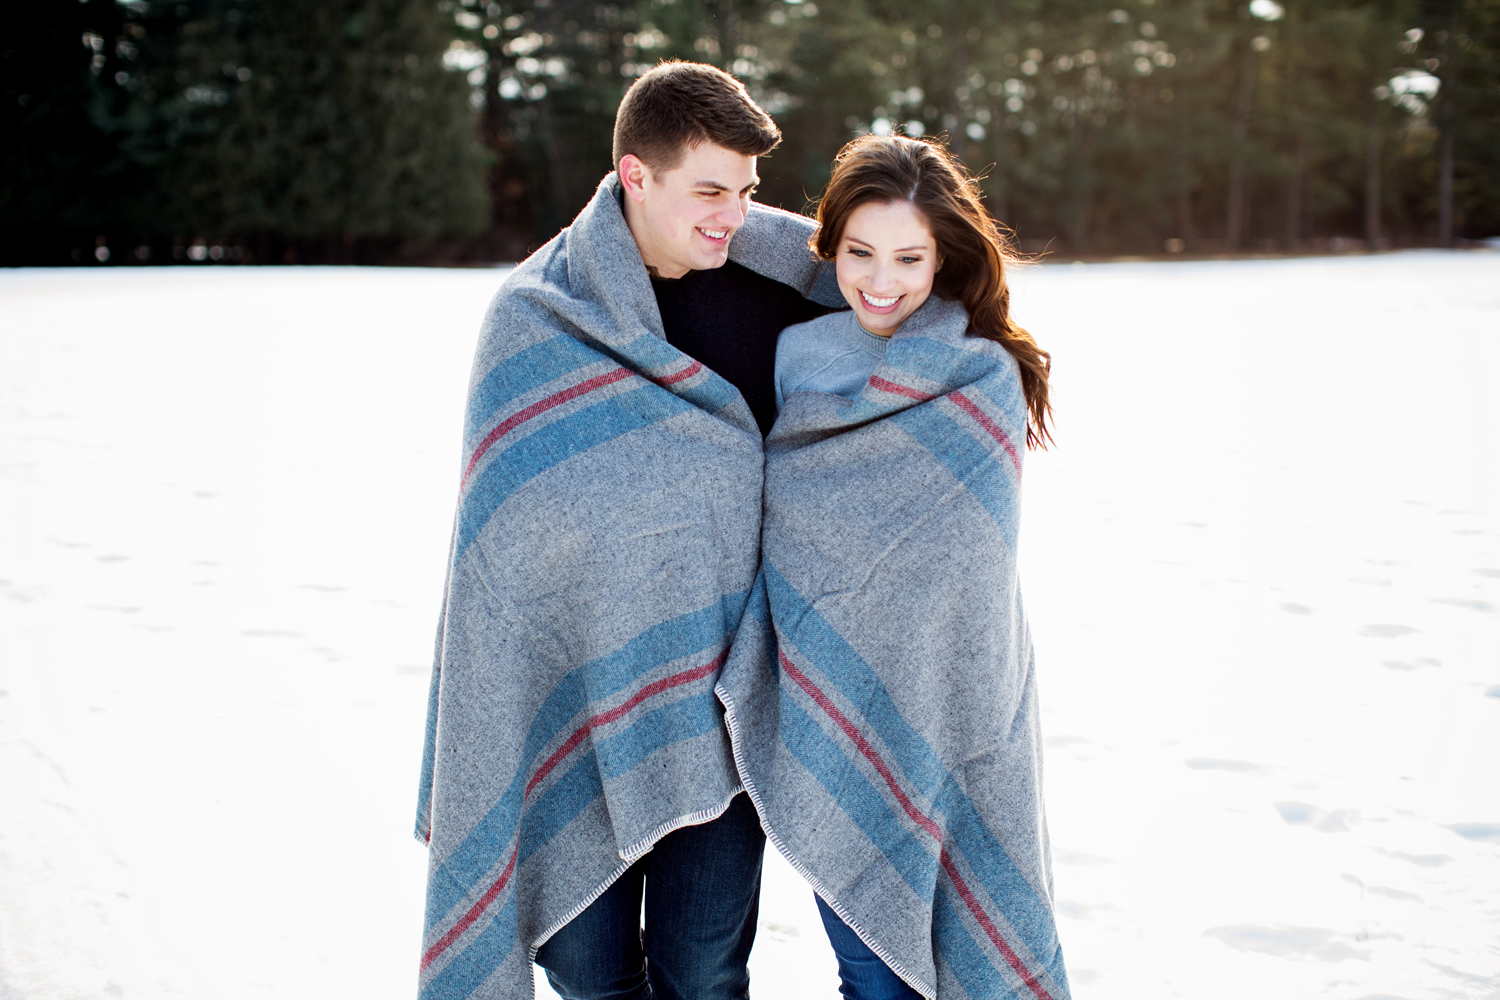 winter engagement photography saratoga ny26.jpg